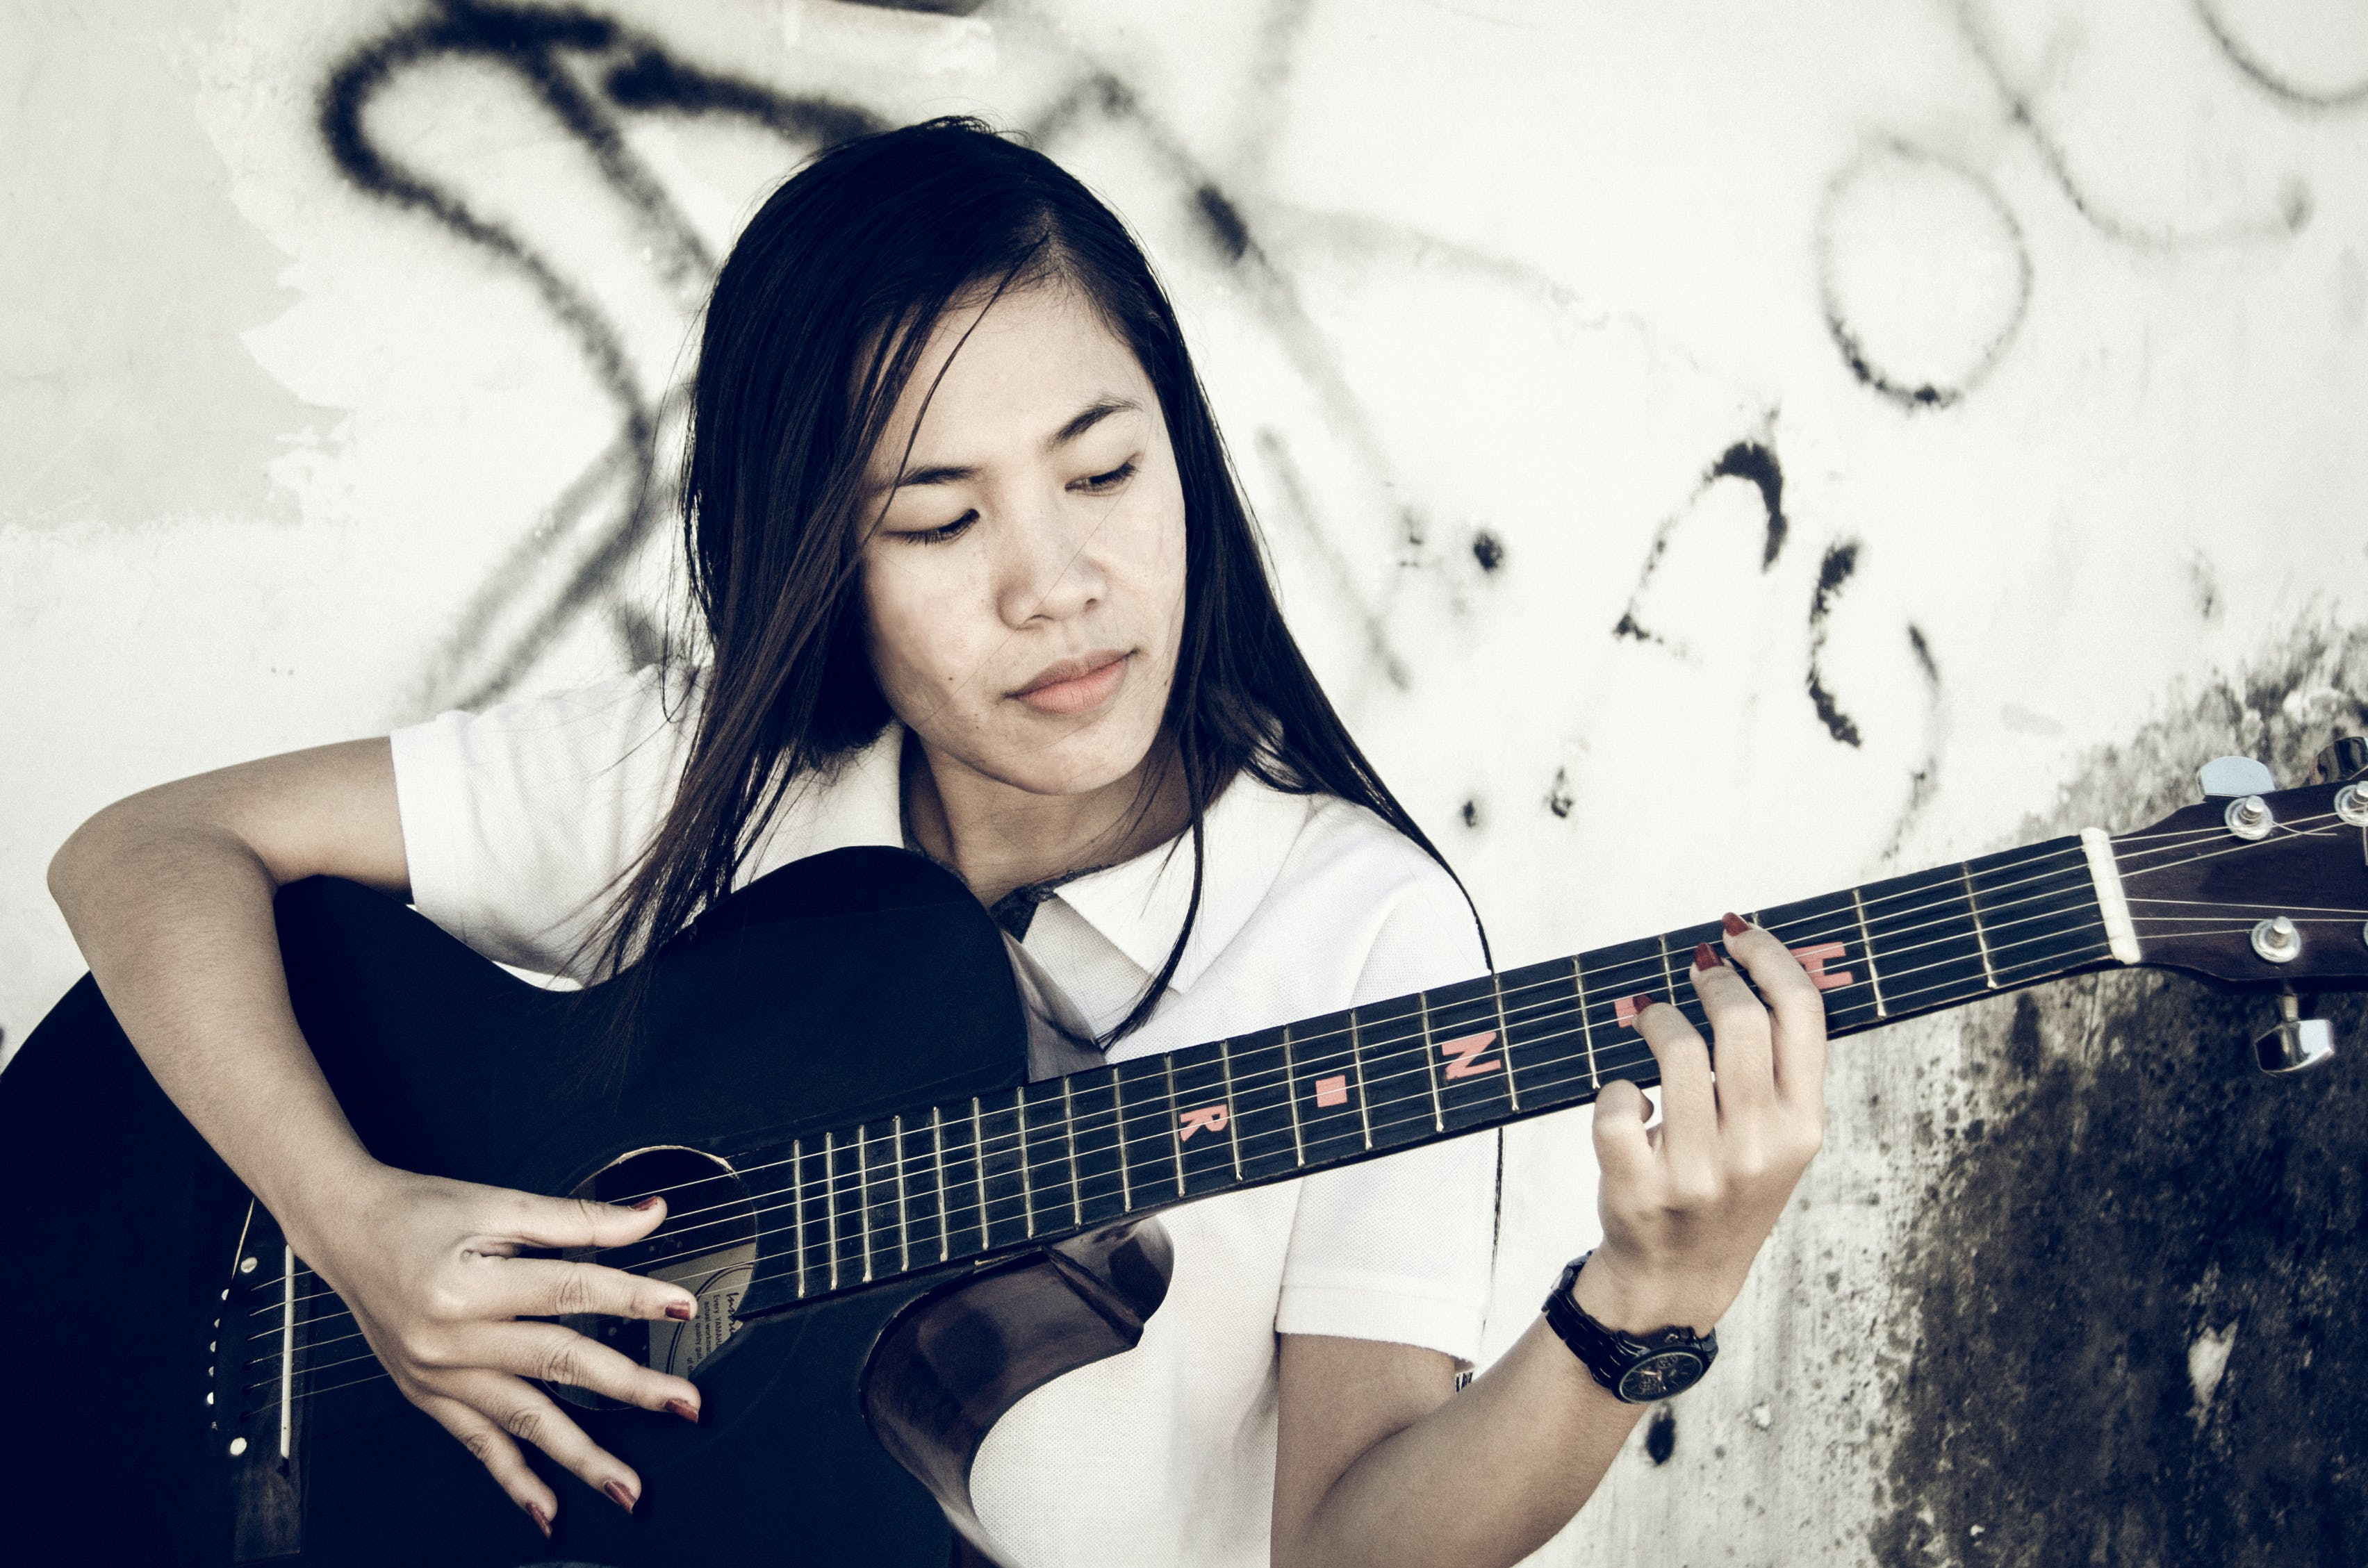 Free stock photo of playing, black, acoustic guitar, asian girl